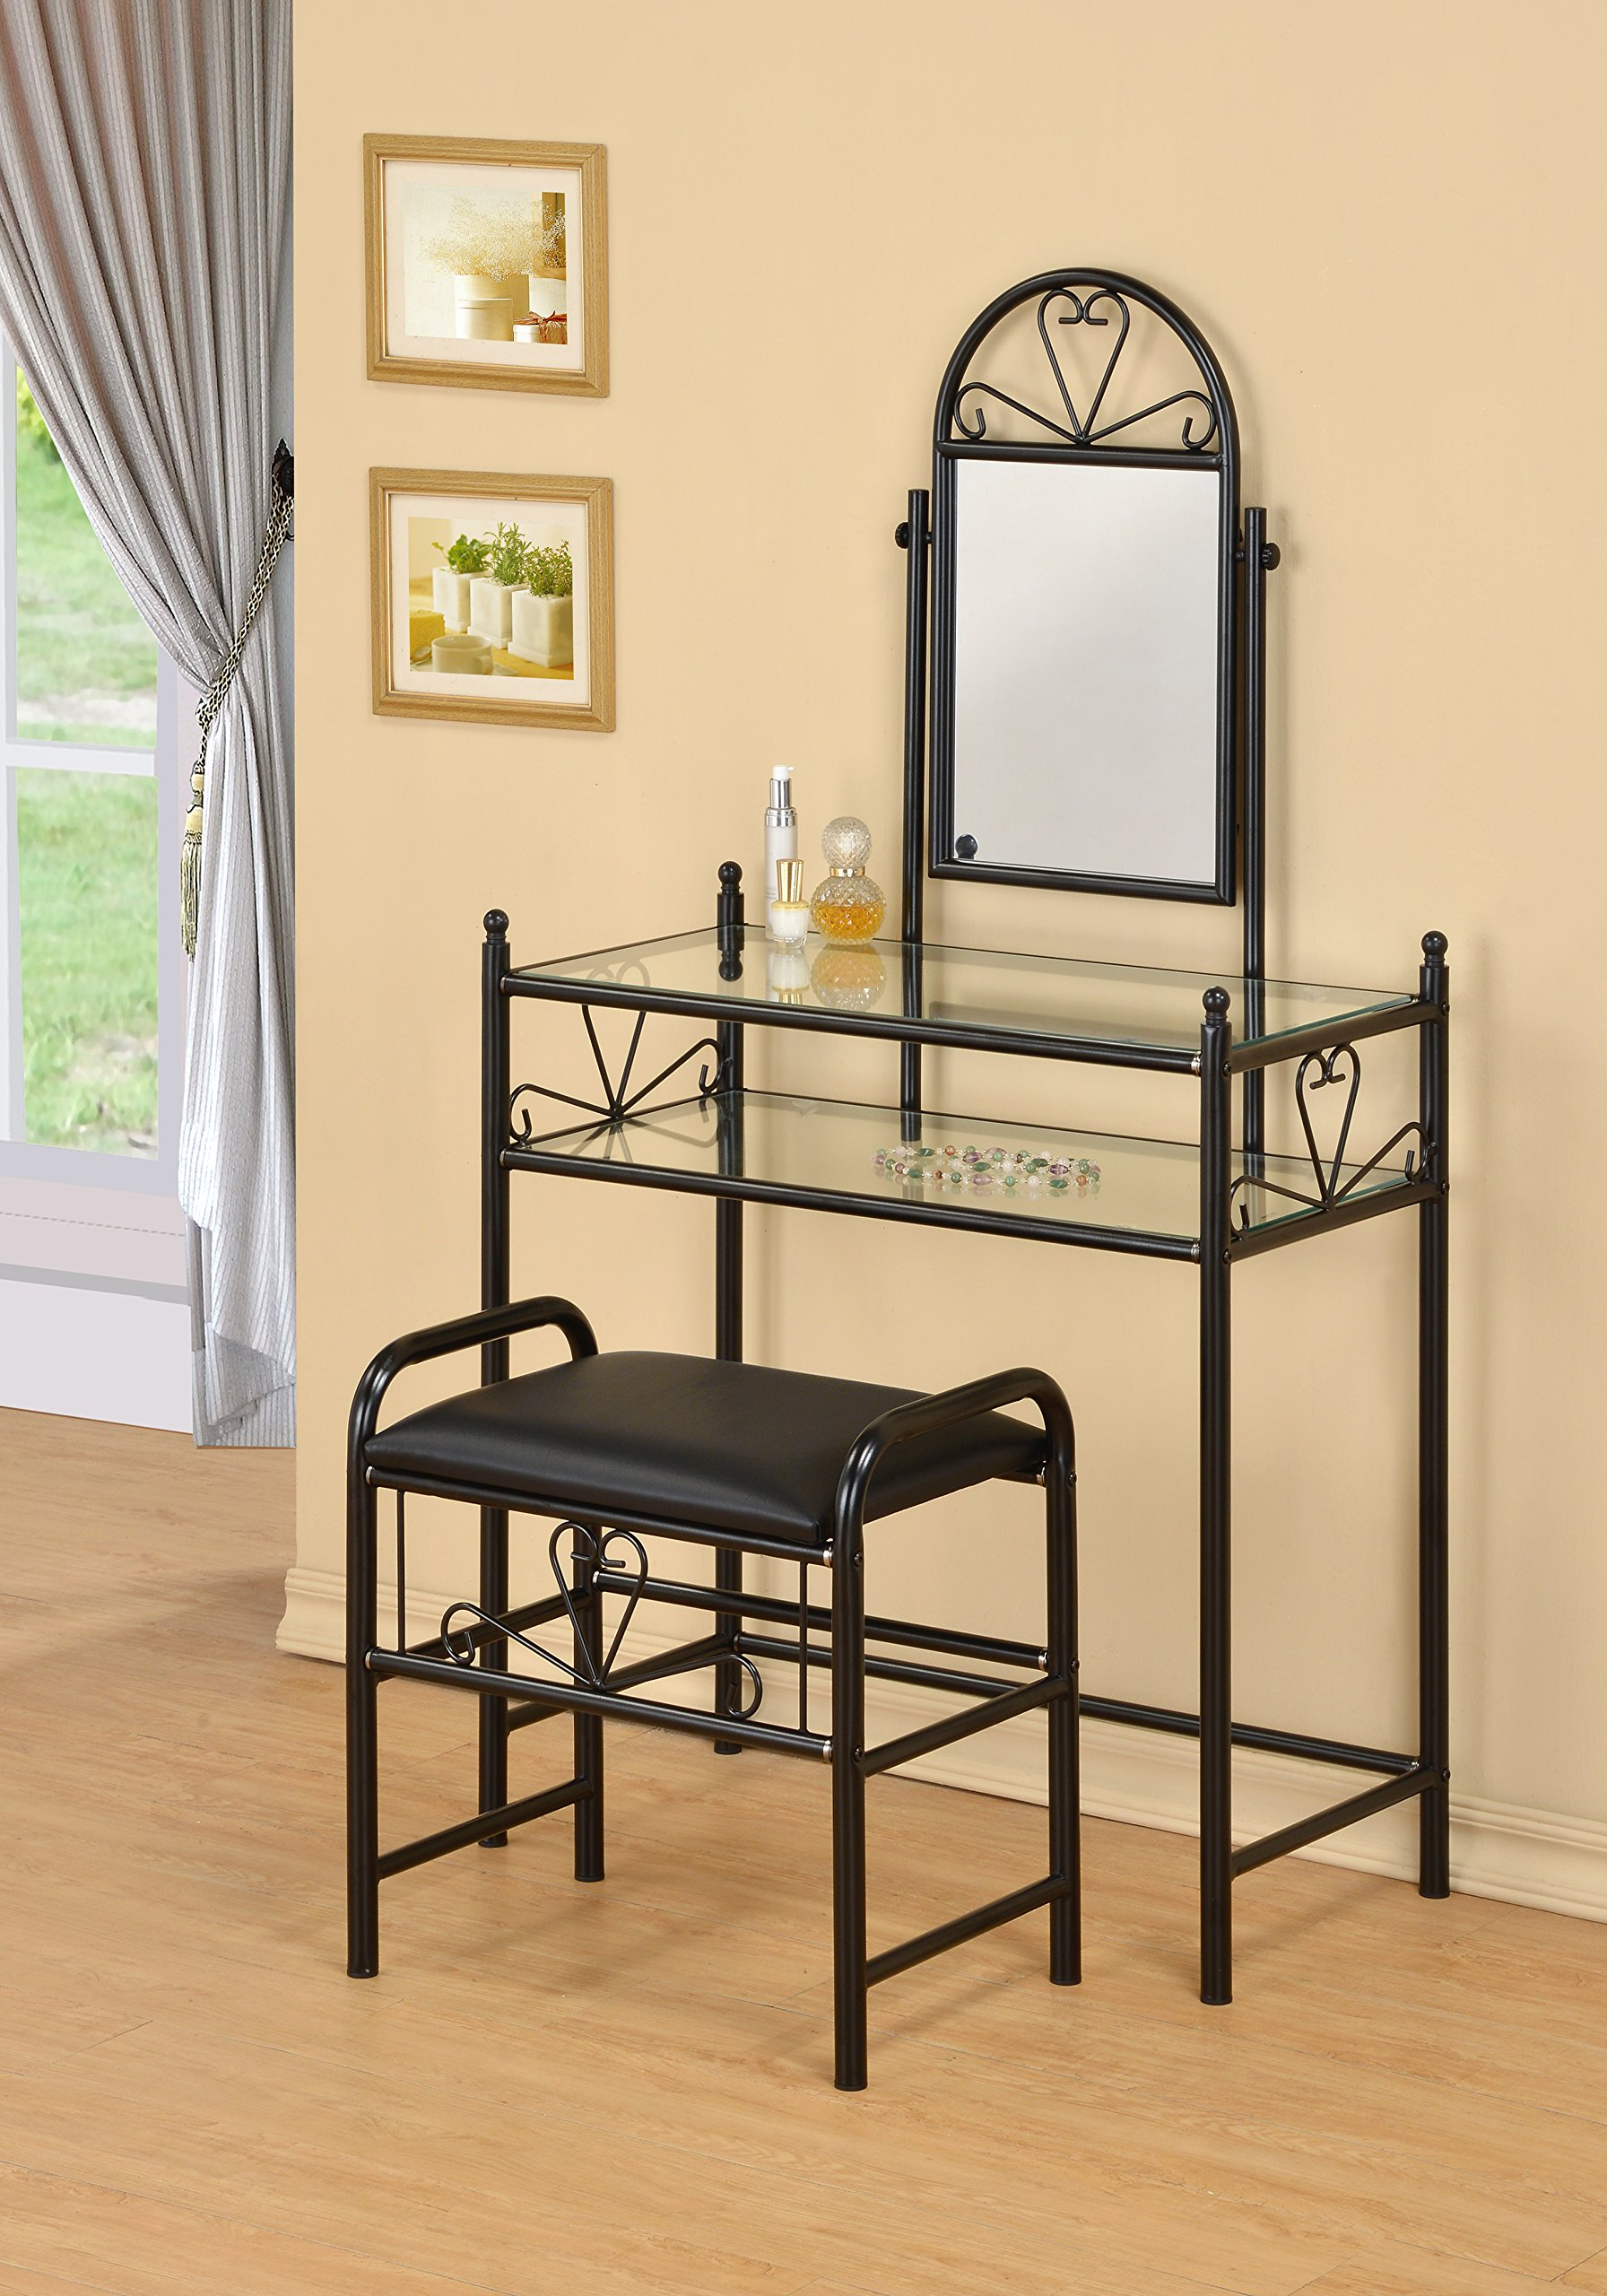 3-Piece Metal Make-Up Heart Mirror Vanity Dresser Table and Stool Set, Black